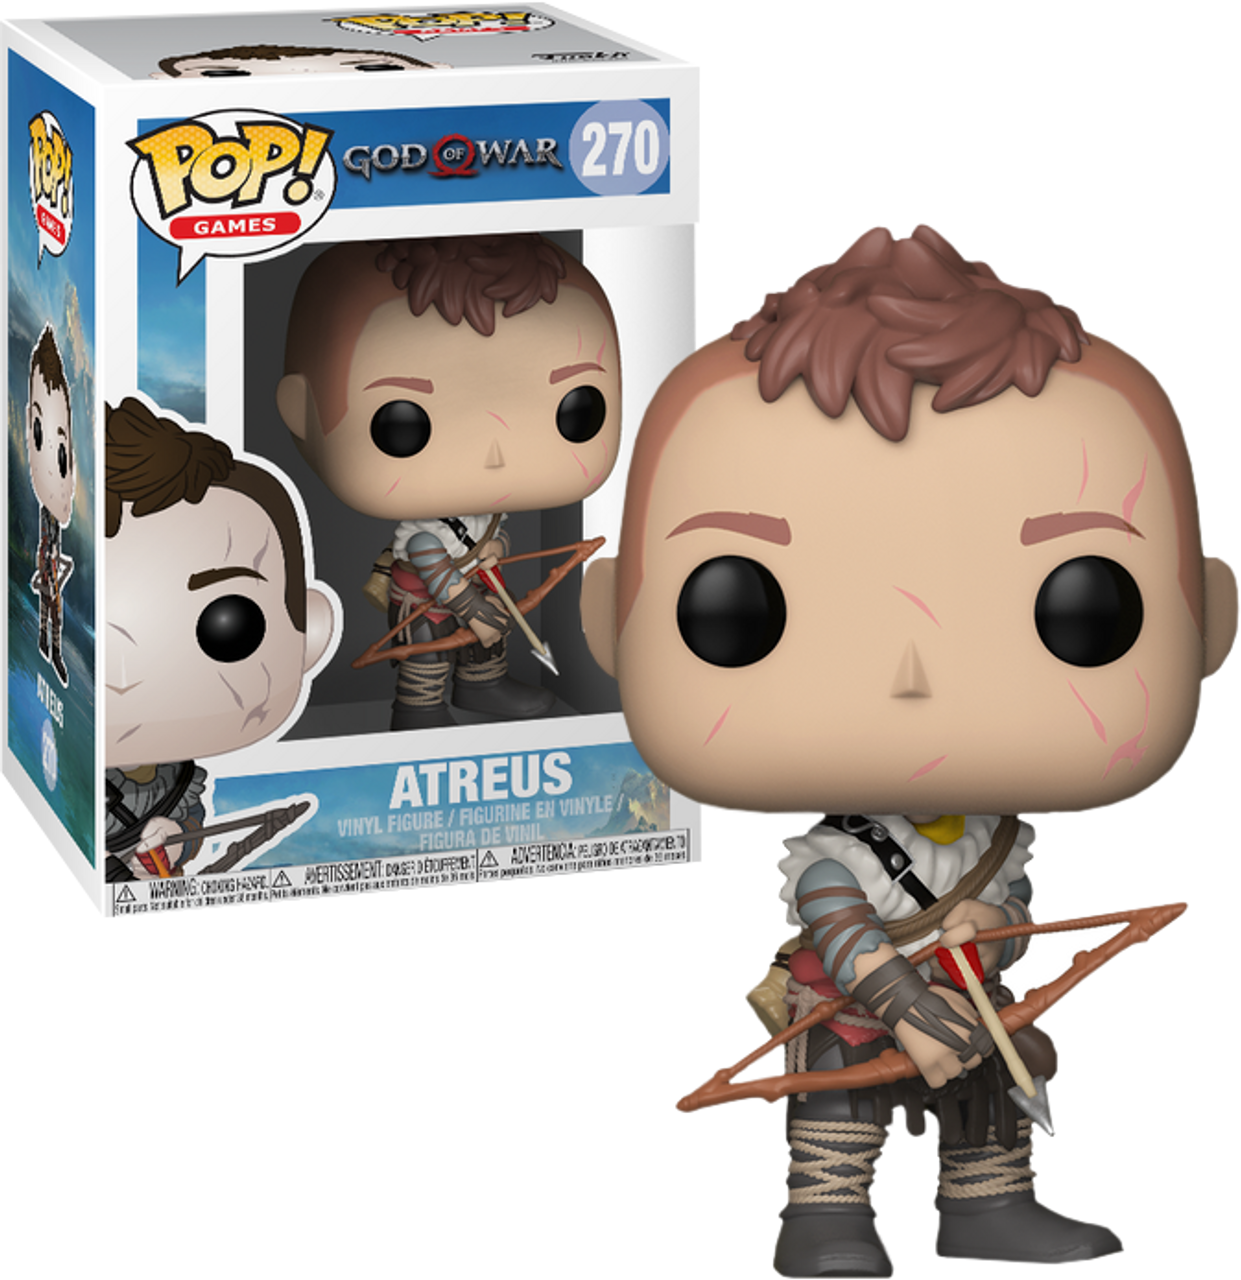 God of War Atreus Funko Pop Vinyl Figure Official Kratos Collectables